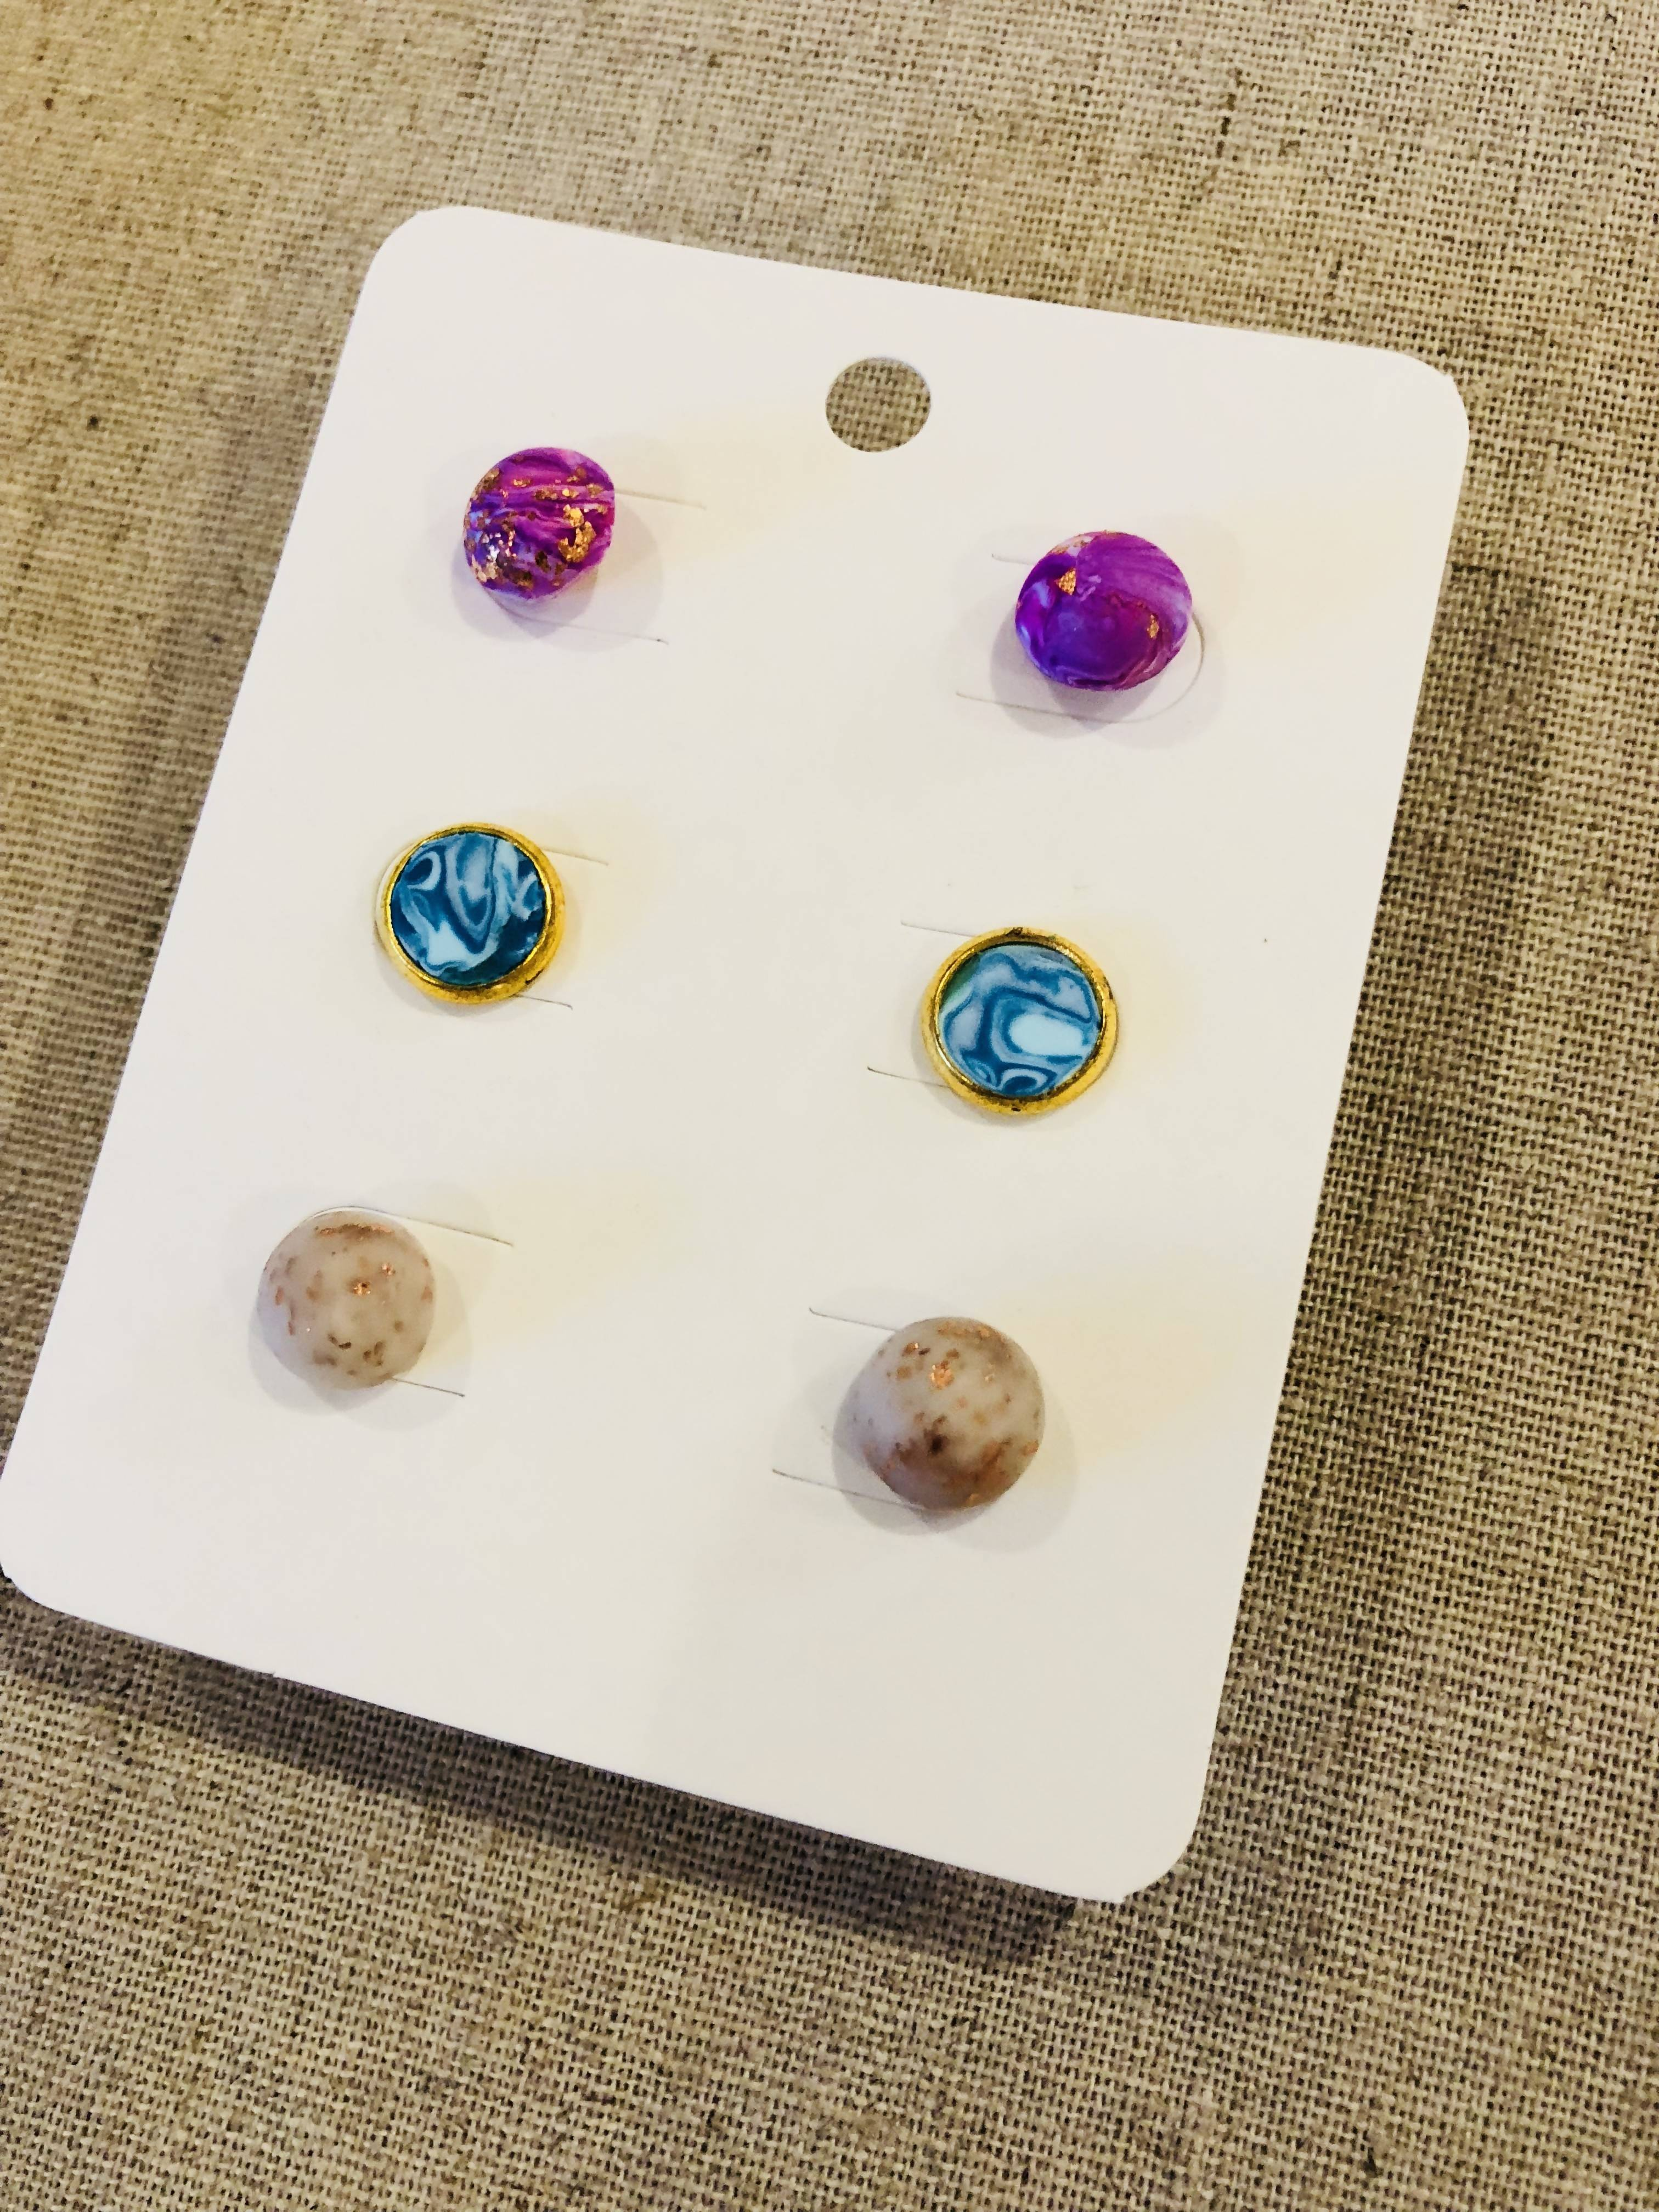 3 pairs of stud earrings - rose gold marble swirls, blue and white marbles and beige and rose gold rounds